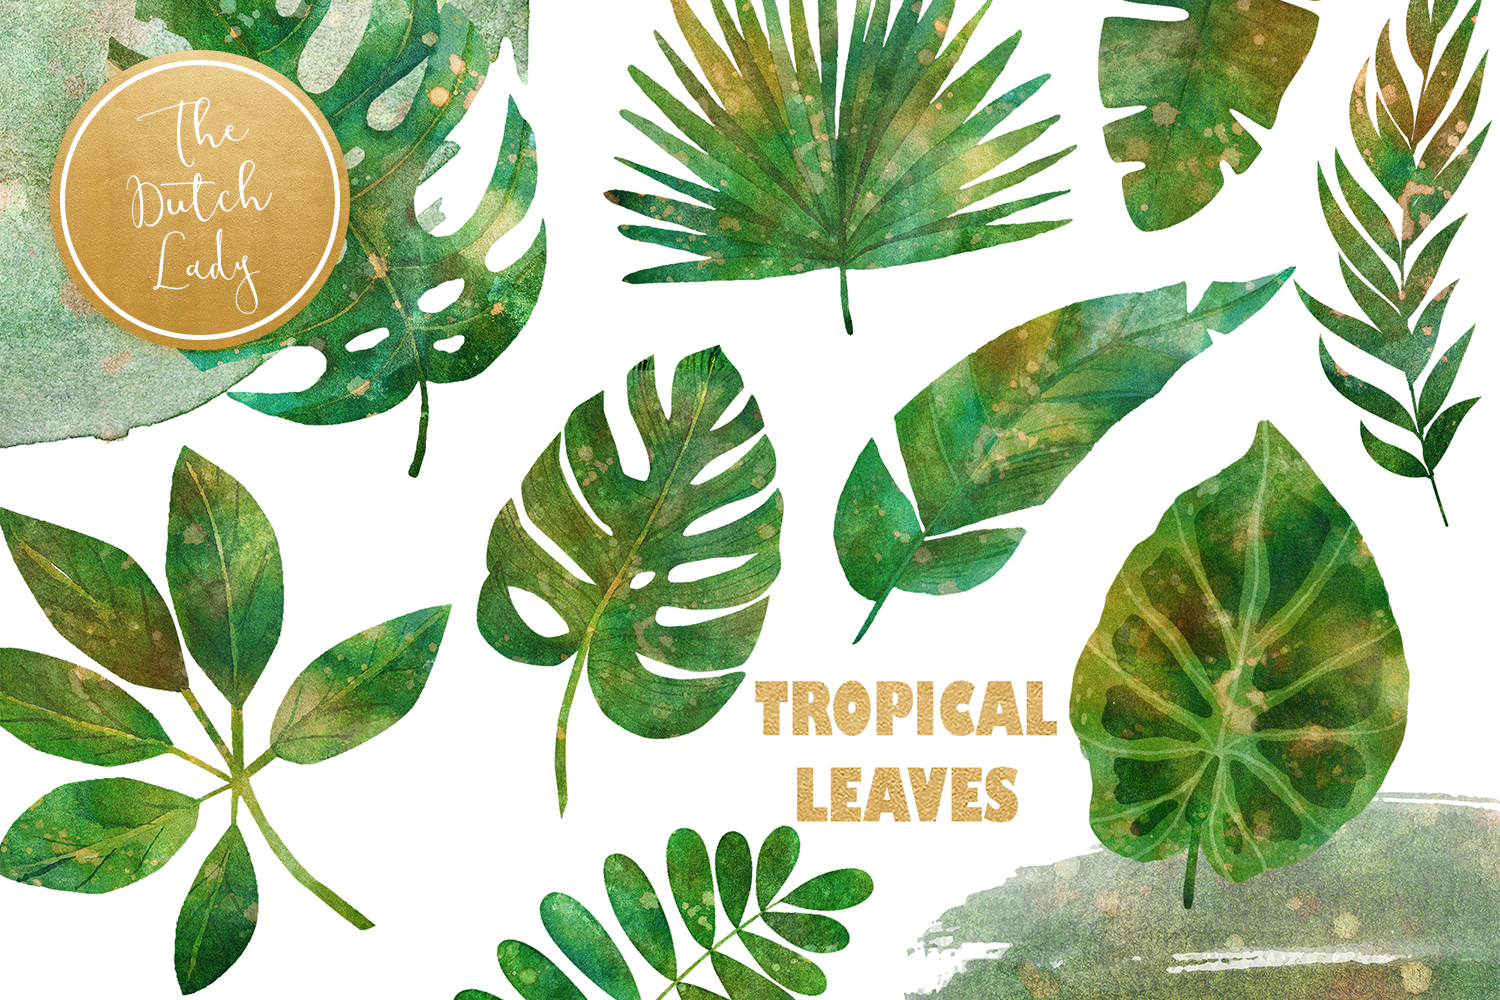 Tropical Jungle Leaves Clipart Set Graphic By Daphnepopuliers Creative Fabrica Explore the 39+ collection of tropical leaves clipart images at getdrawings. tropical jungle leaves clipart set